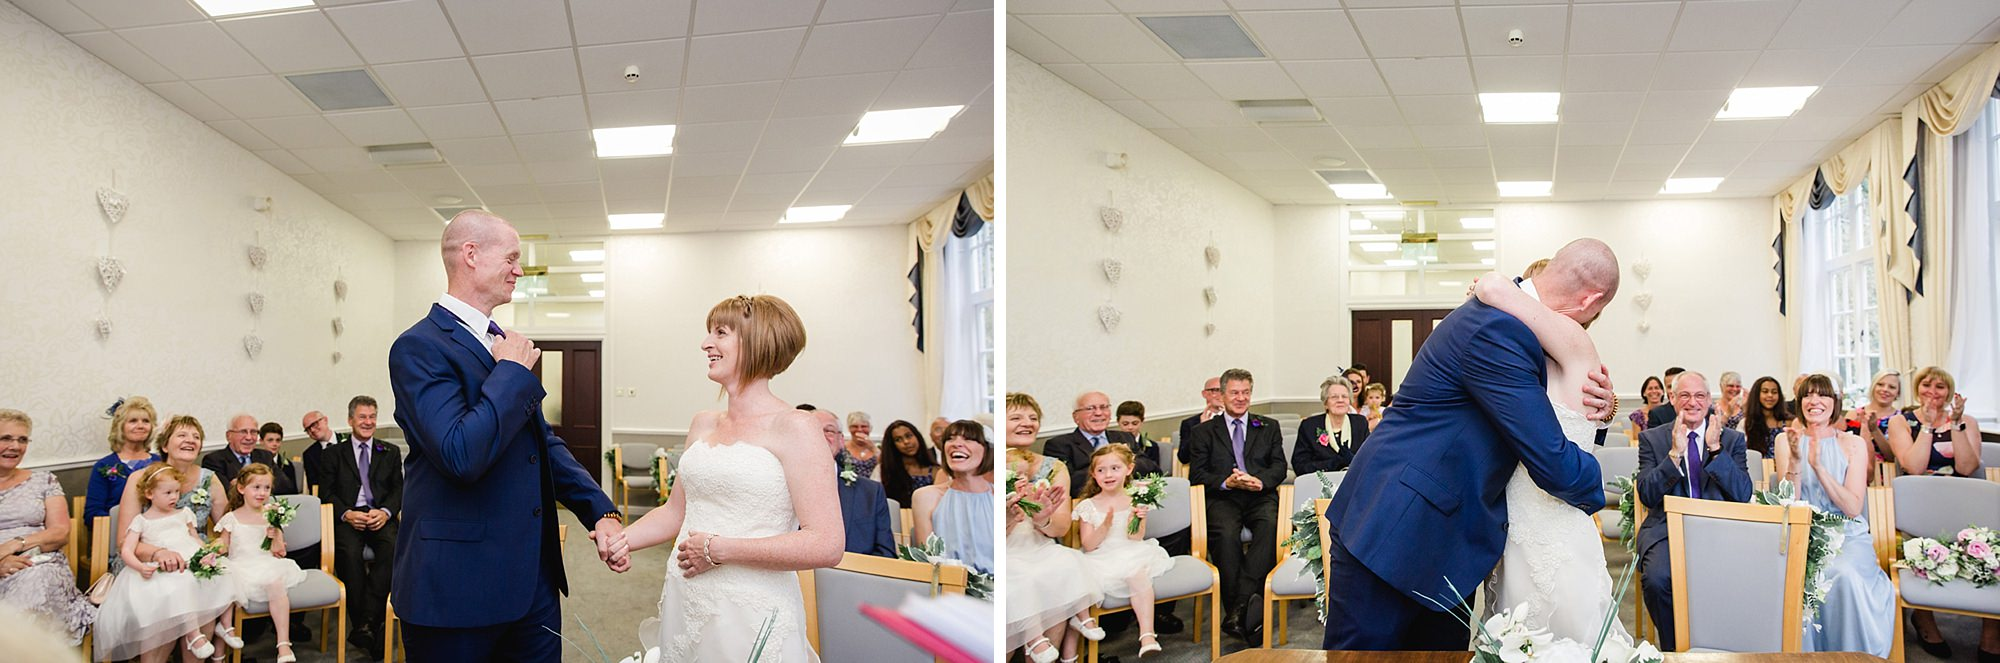 Mill House hotel wedding photography first kiss